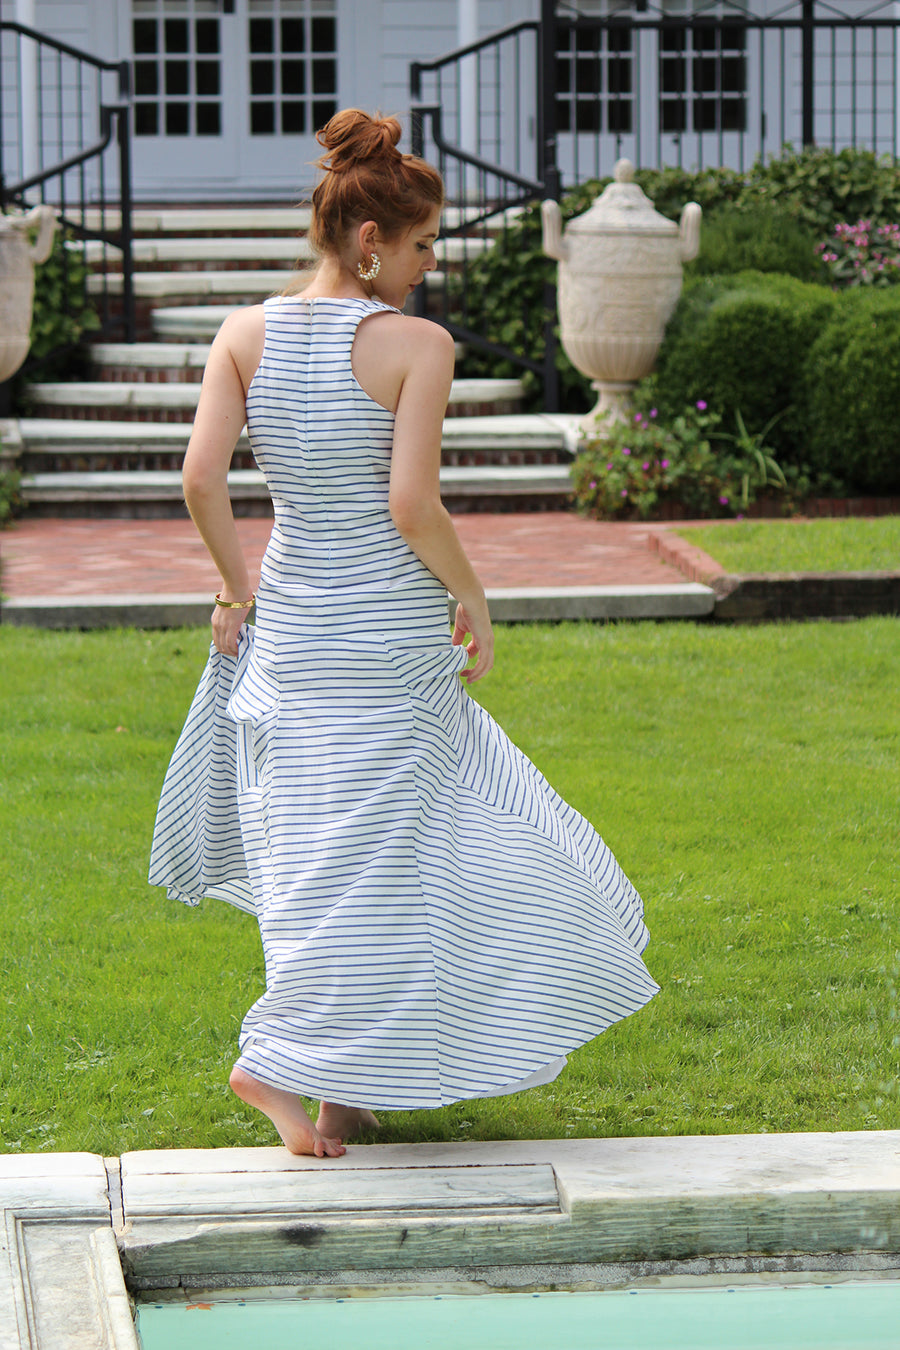 scoop neck striped flattering drop waist fitted racer back designer flowy airy maxi dress pockets pool party